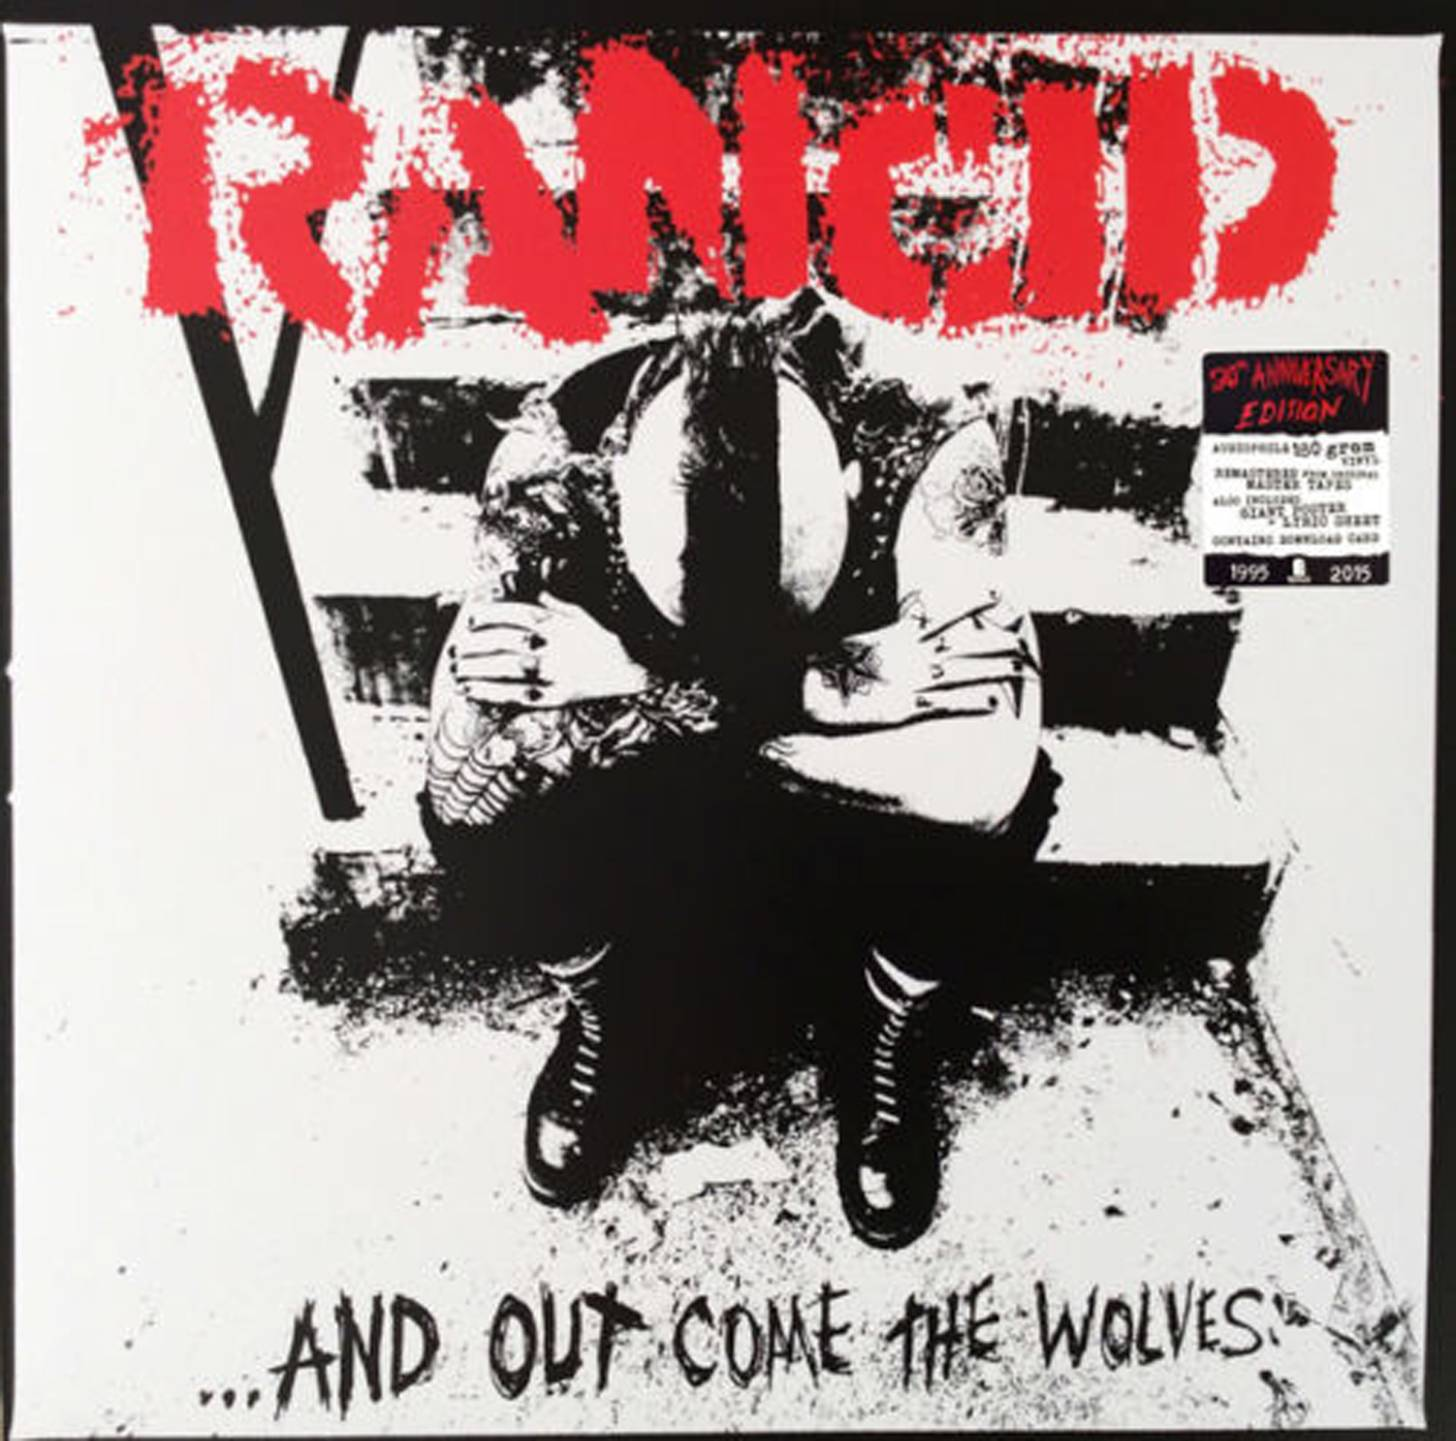 RANCID - AND OUT COME THE WOLVES (20th Anniversary) LP